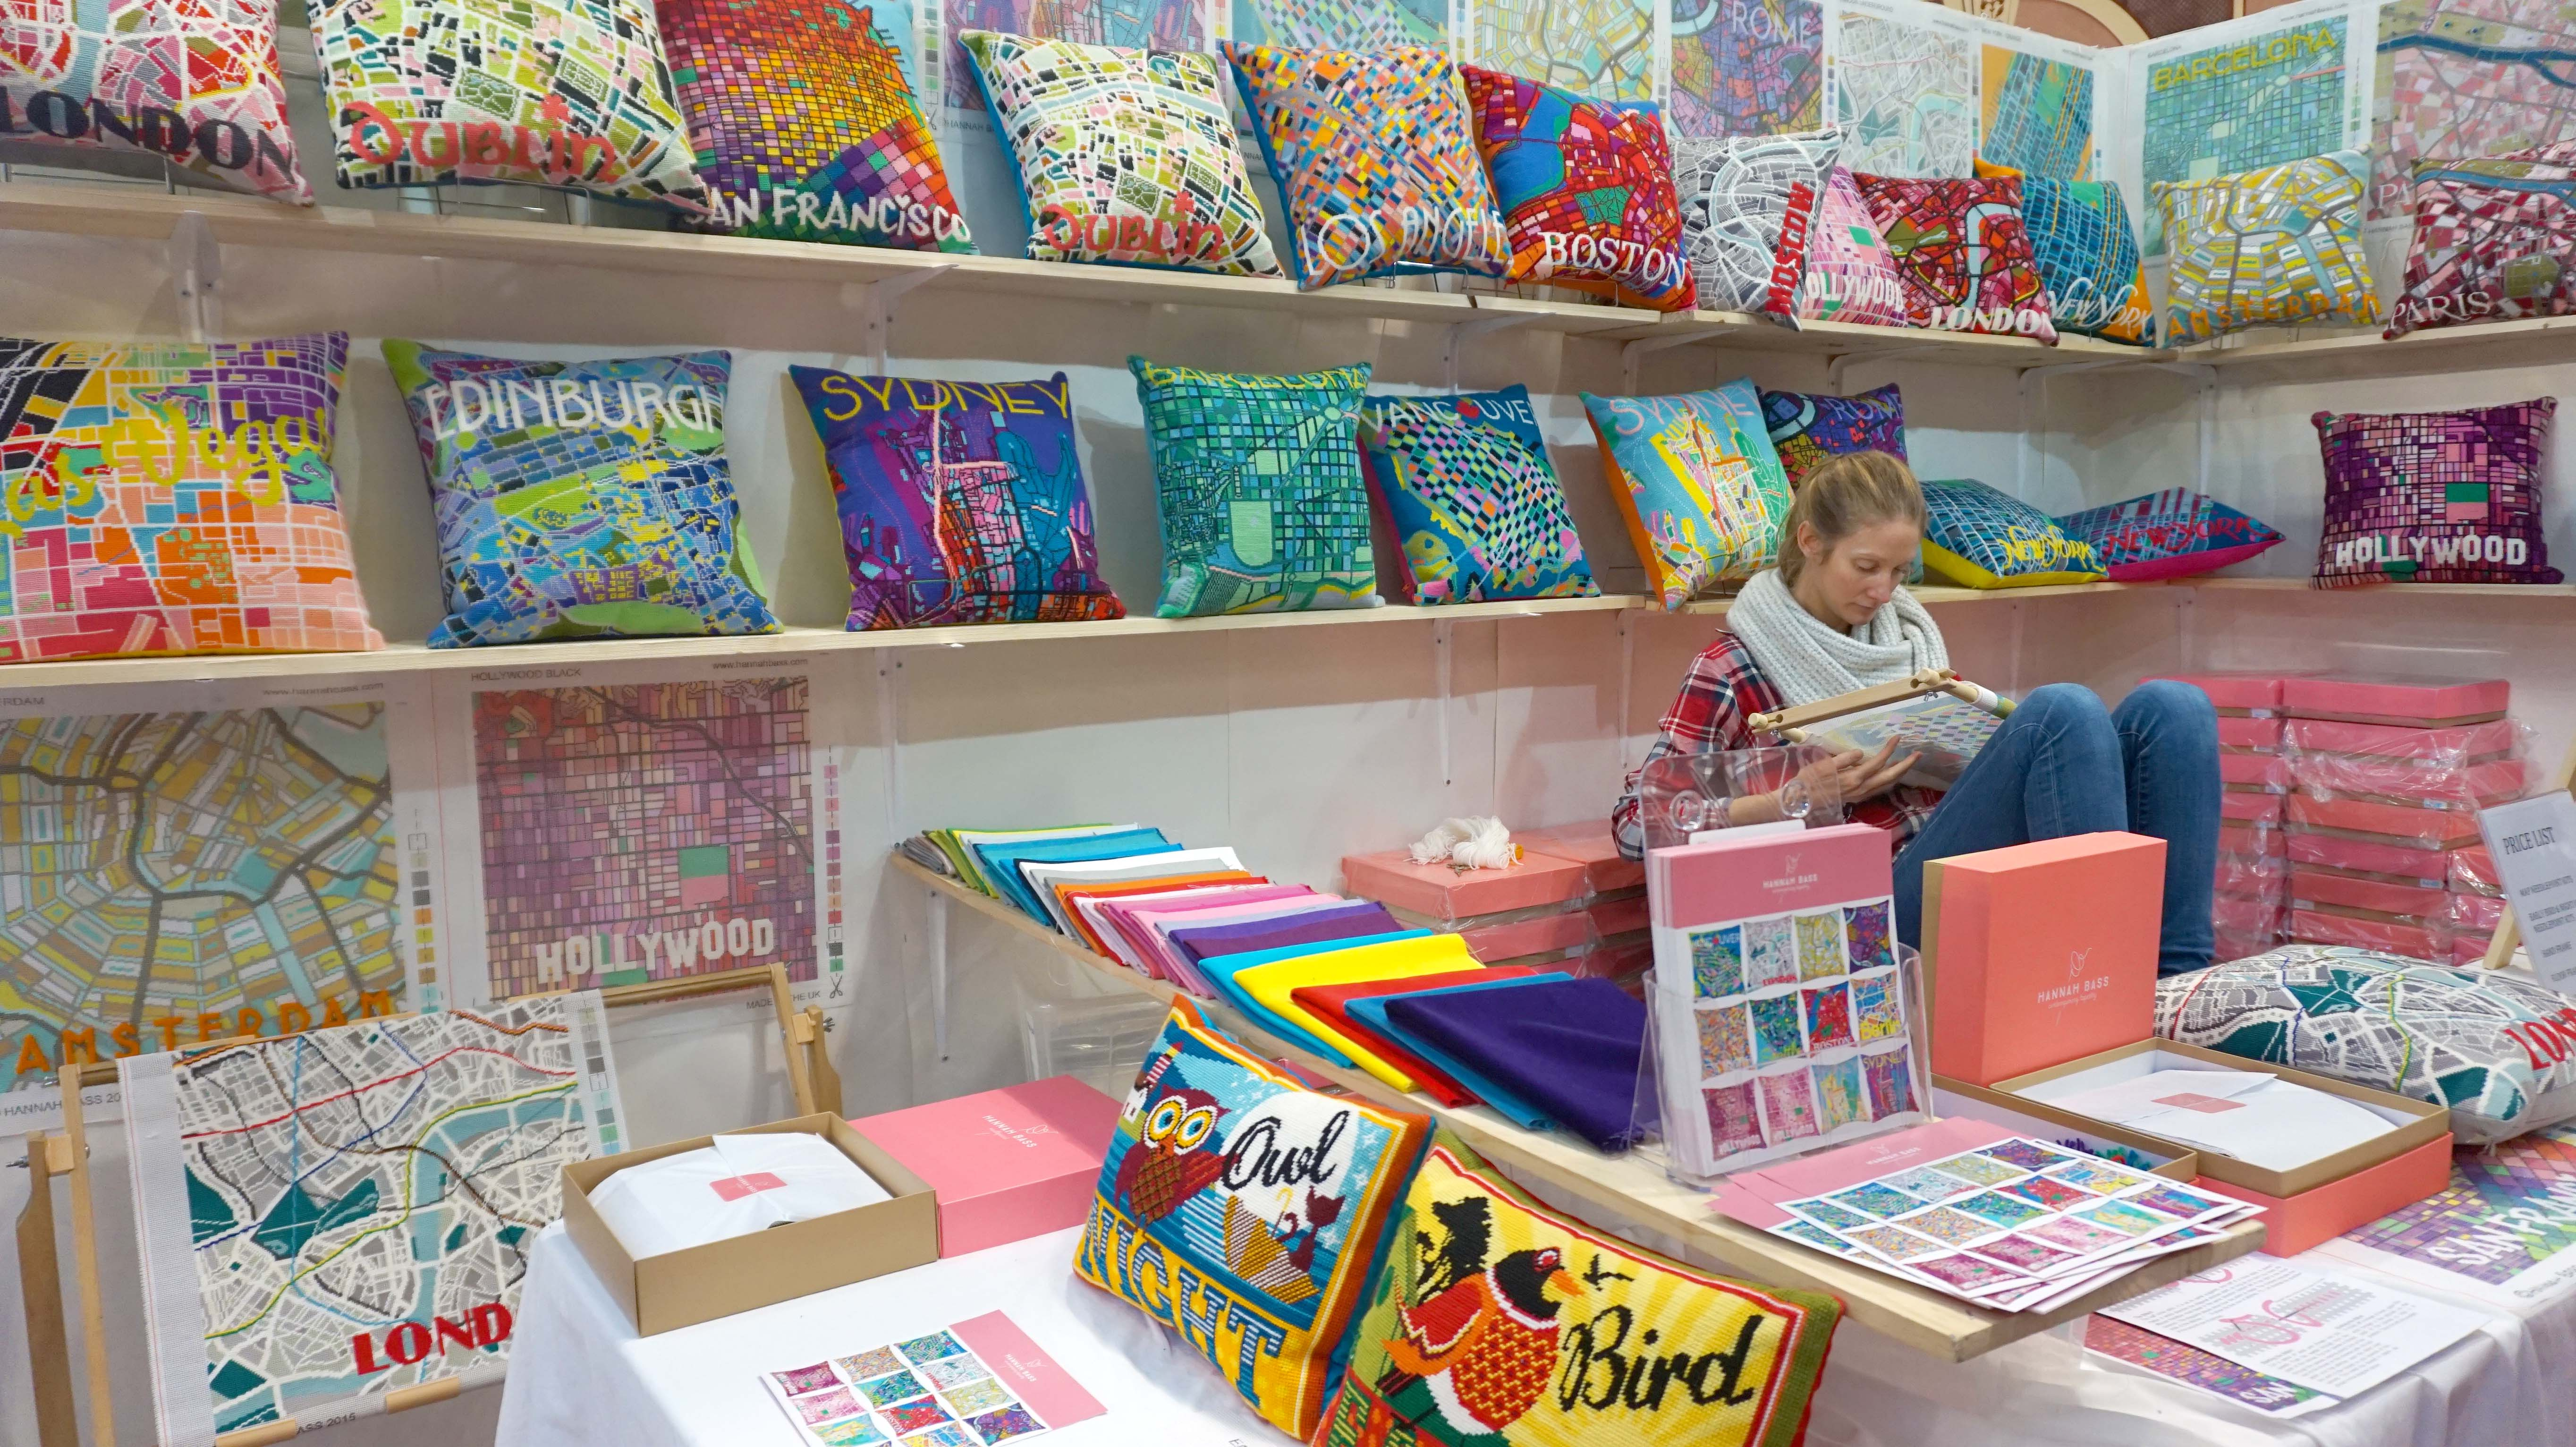 The Knitting And Stitching Show 2017 Rds : Ragged Life Blog Highlights from the Knitting and Stitching Show 2017 - Rag...